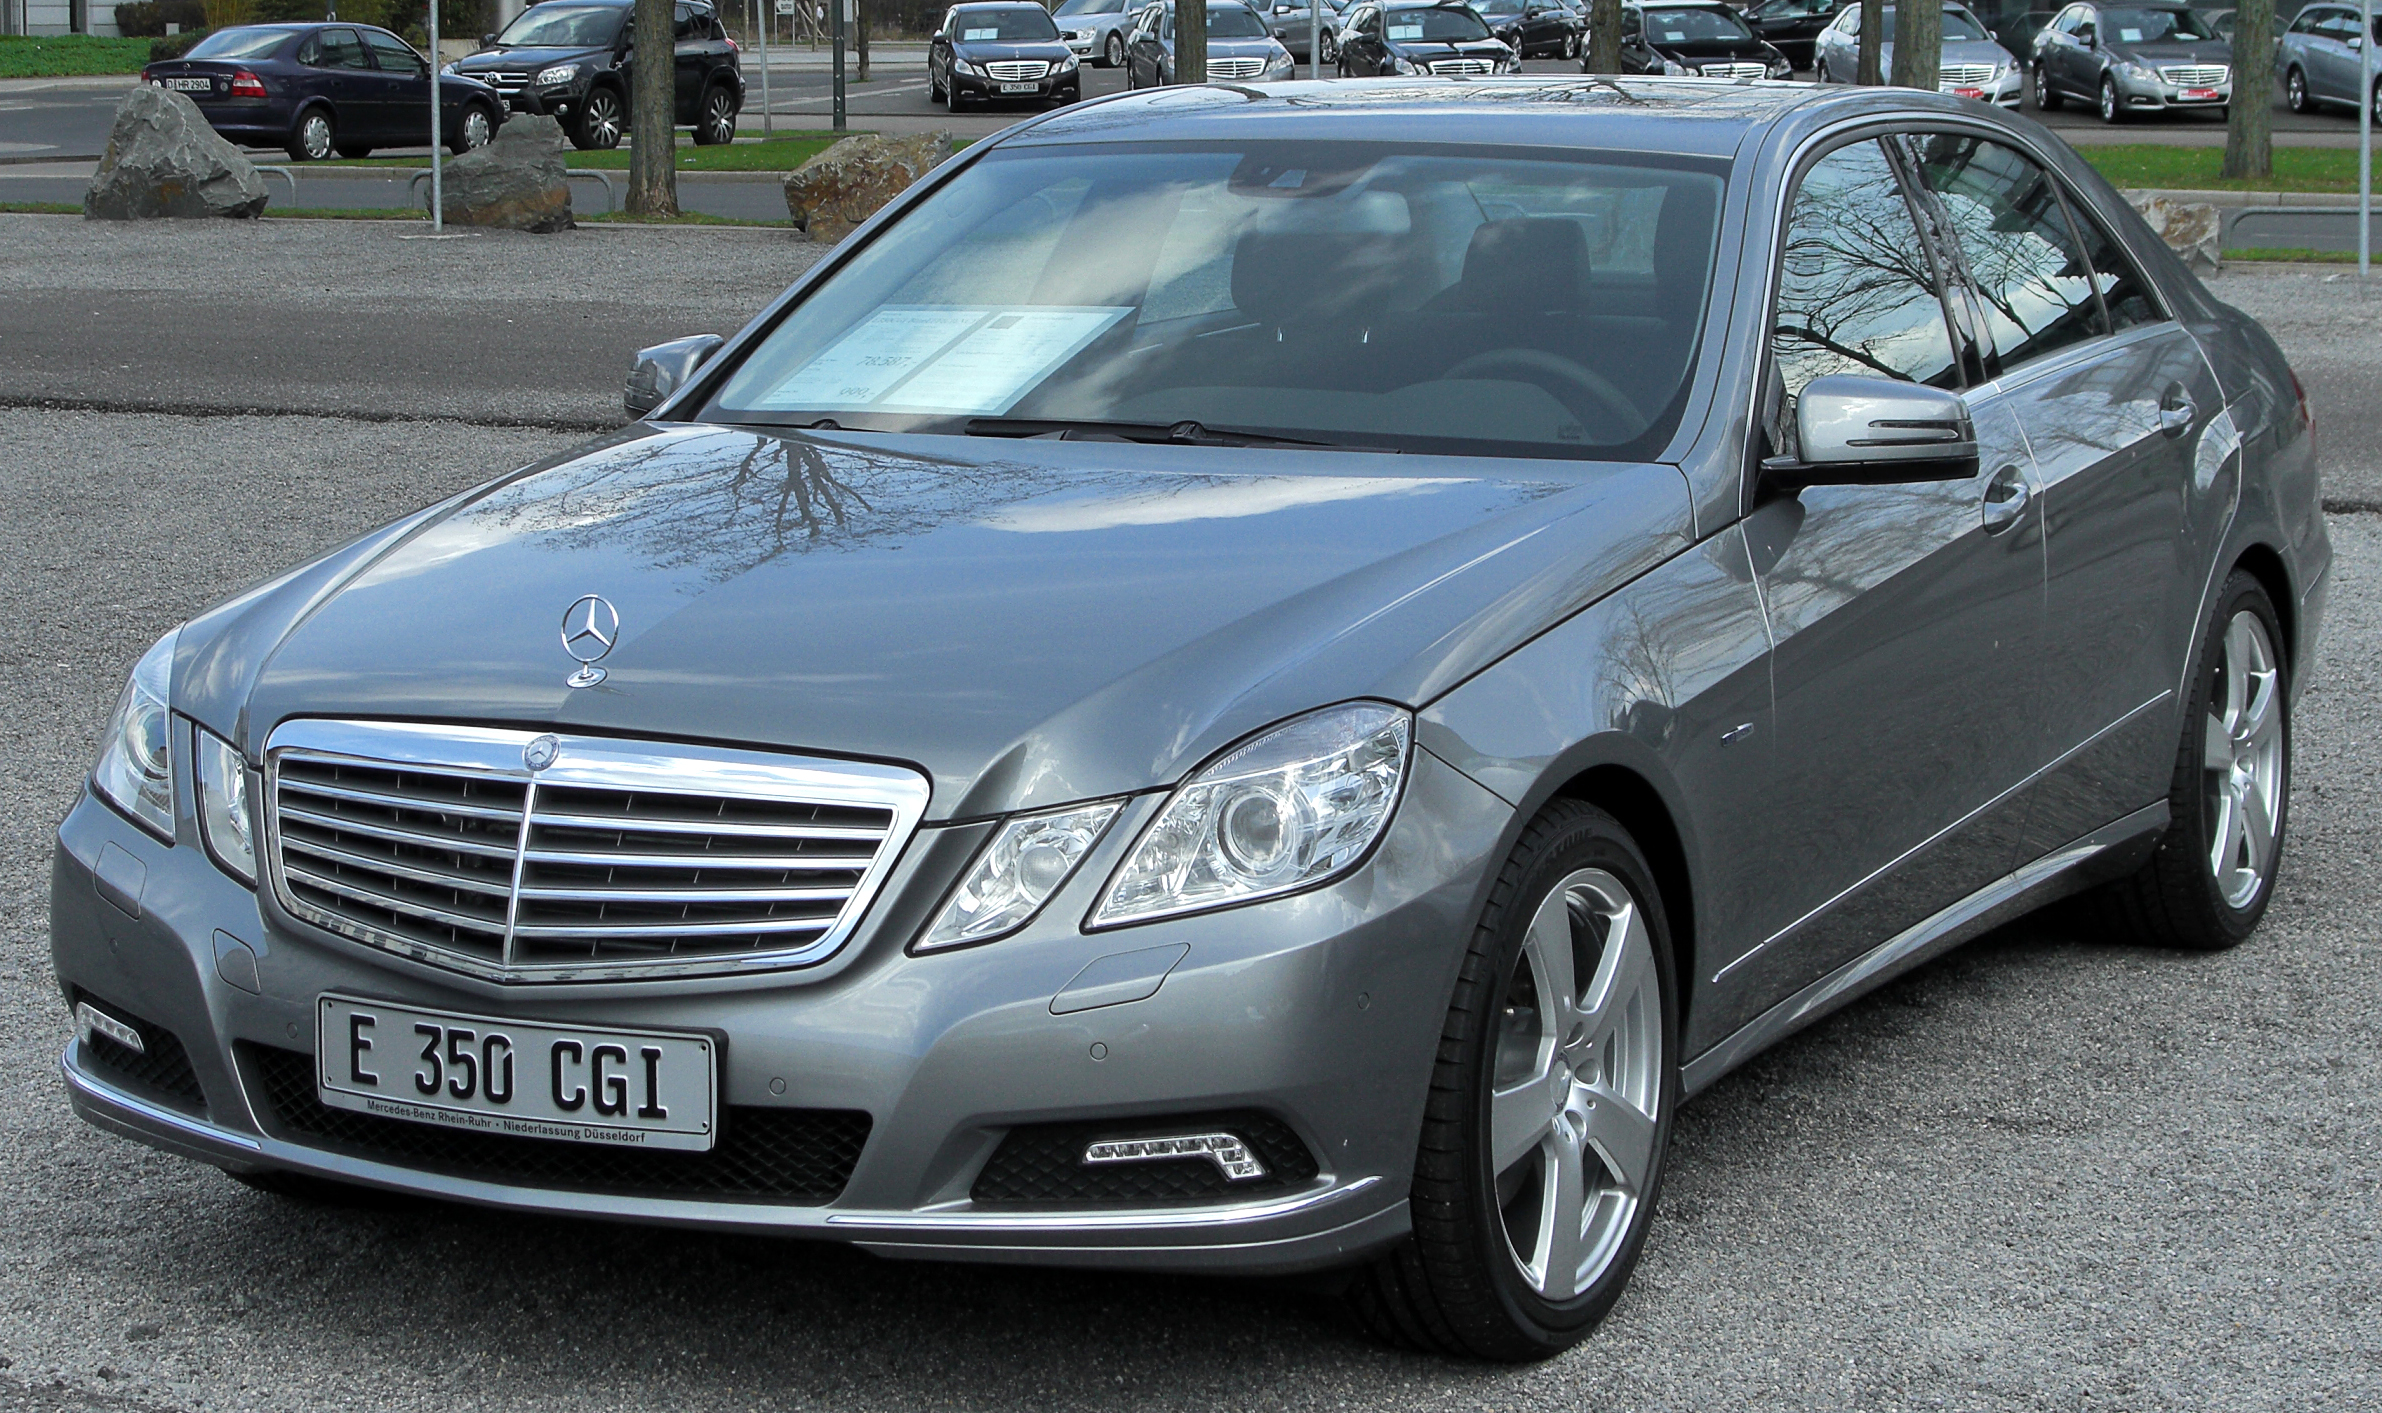 File Mercedes Benz W211 E 55 AMG Calcitwei C3 9F Heck further File Mercedes Benz Bank besides Price Quotes in addition Bahnhofmain Station Stuttgart Germany P2341 additionally Price Quotes. on mercedes benz logo usage